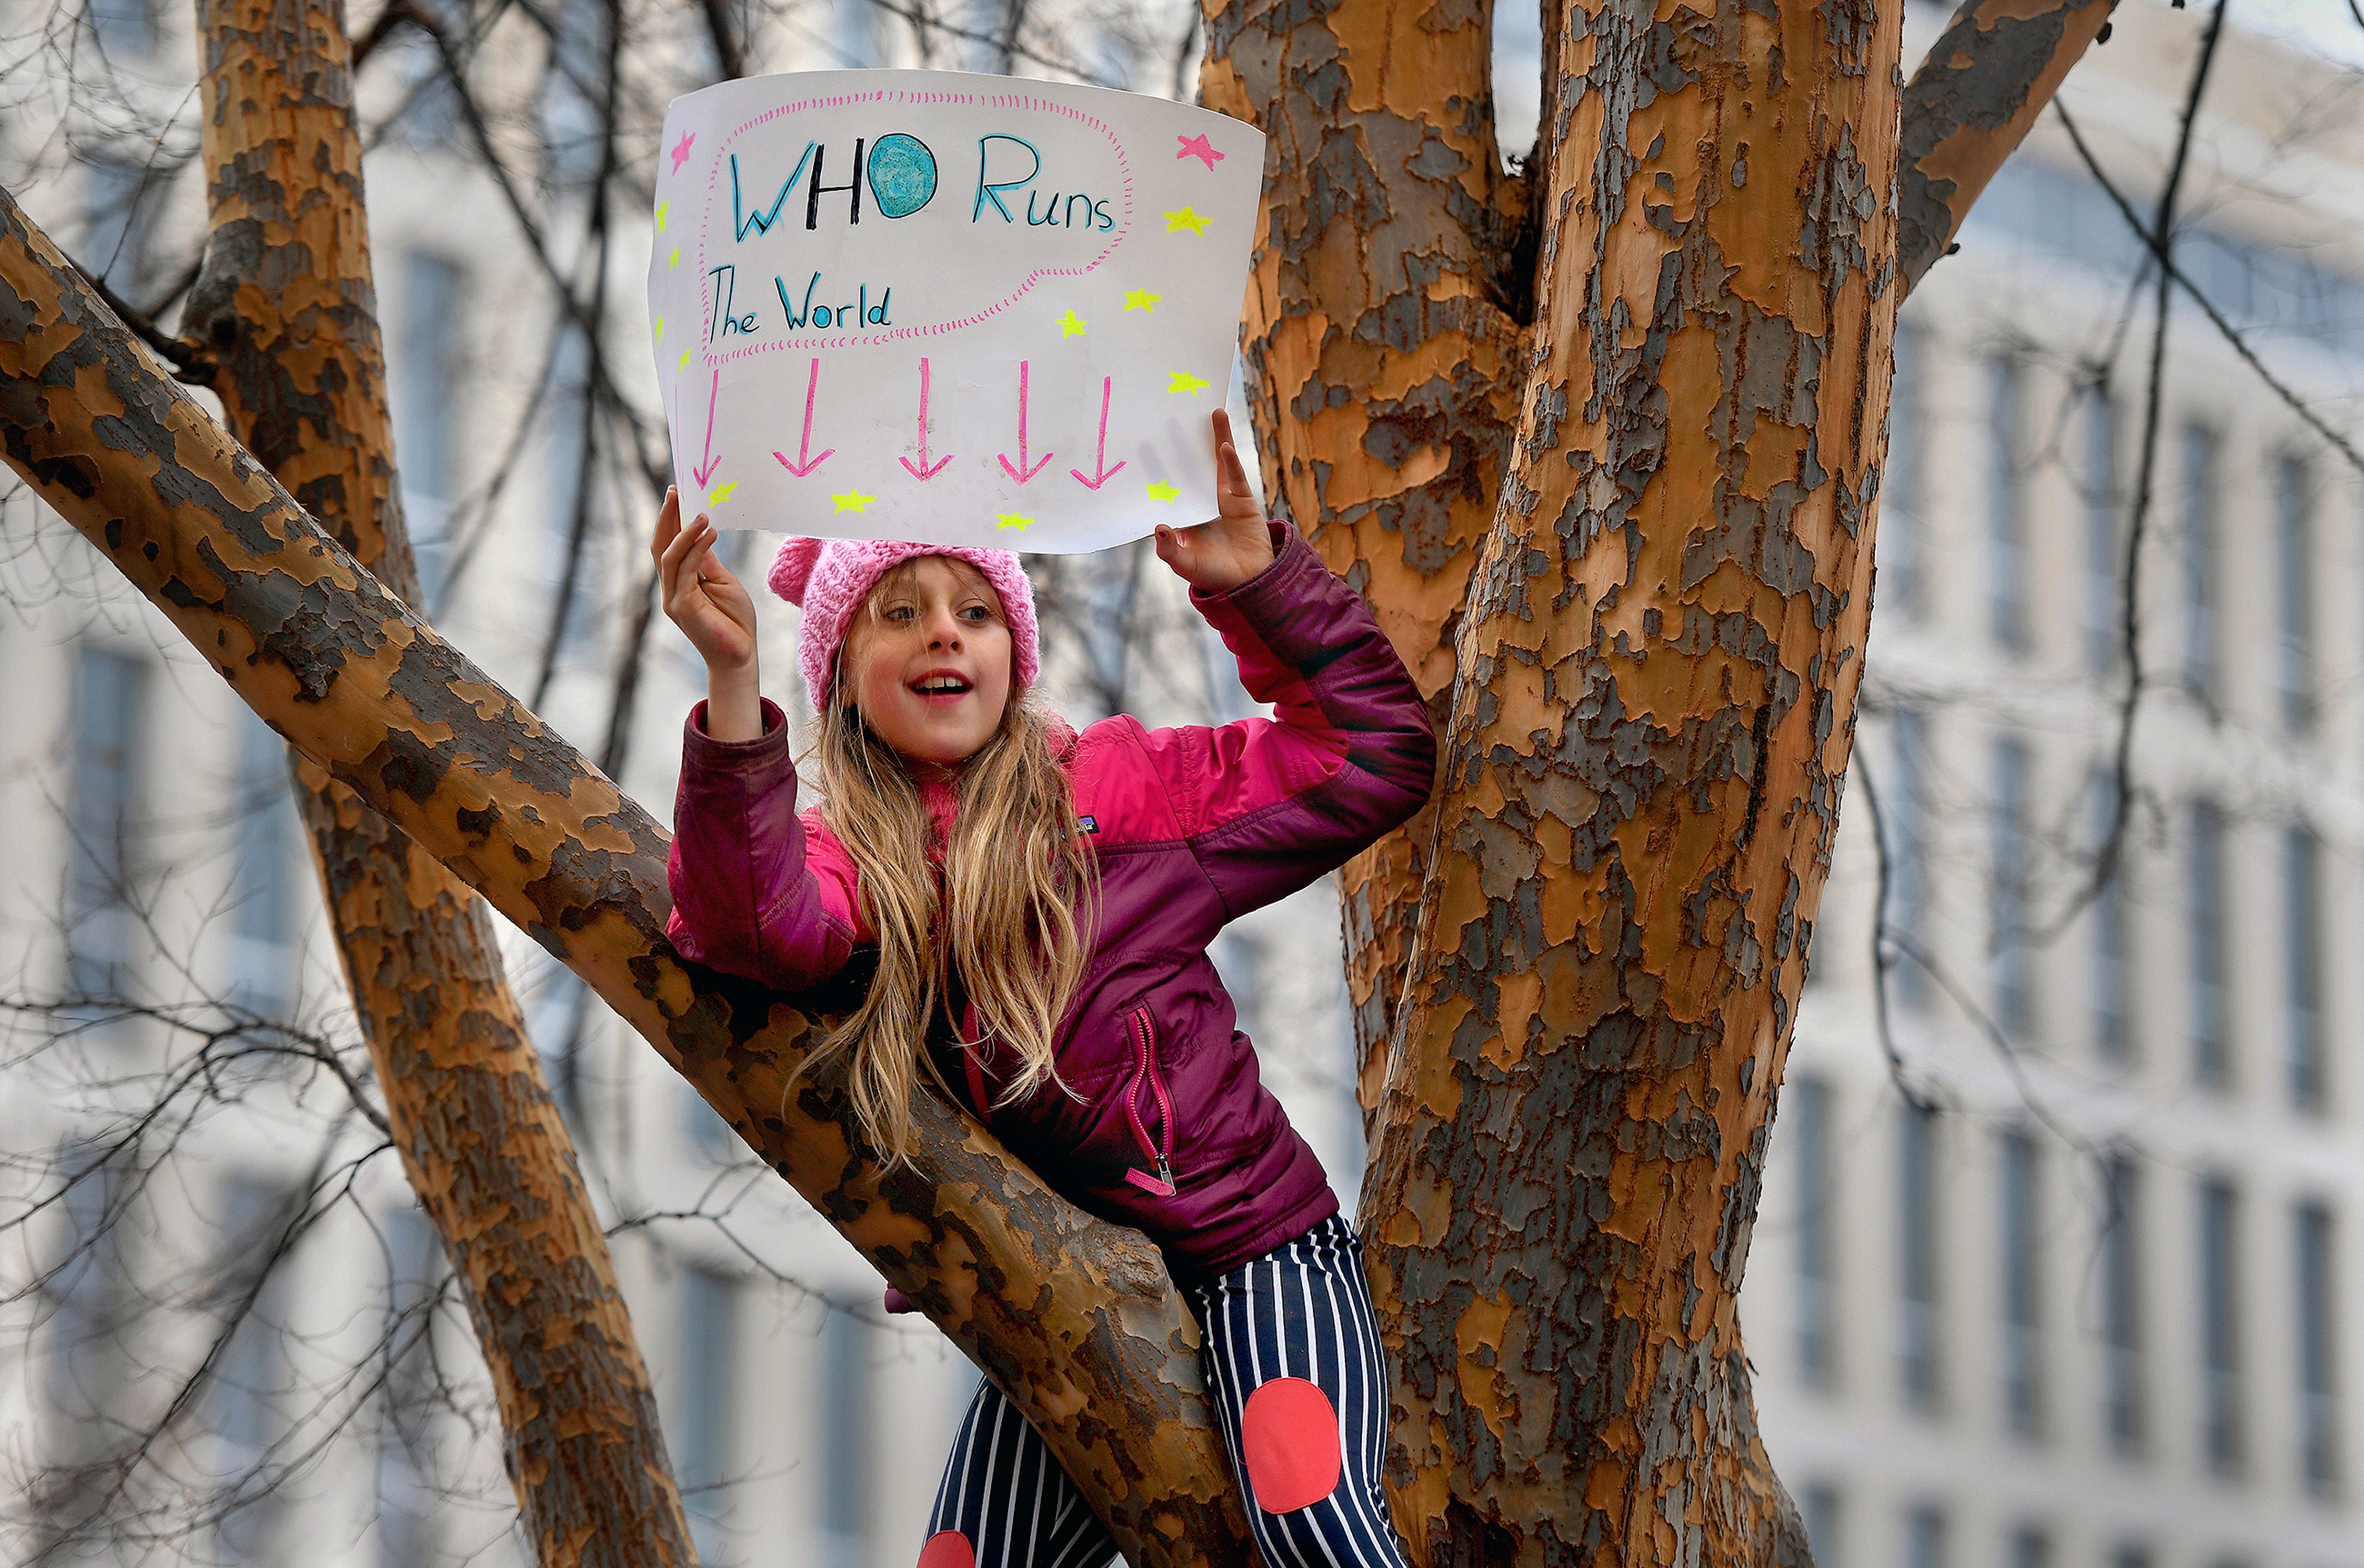 Erin Moskowitz, 9, of Pelham, N.Y., who attended the Women's March on Washington with her parents, grandmother and three sisters, finds a perch from which to view the crowd at the Mall. Must credit: Washington Post photo by Michael S. Williamson